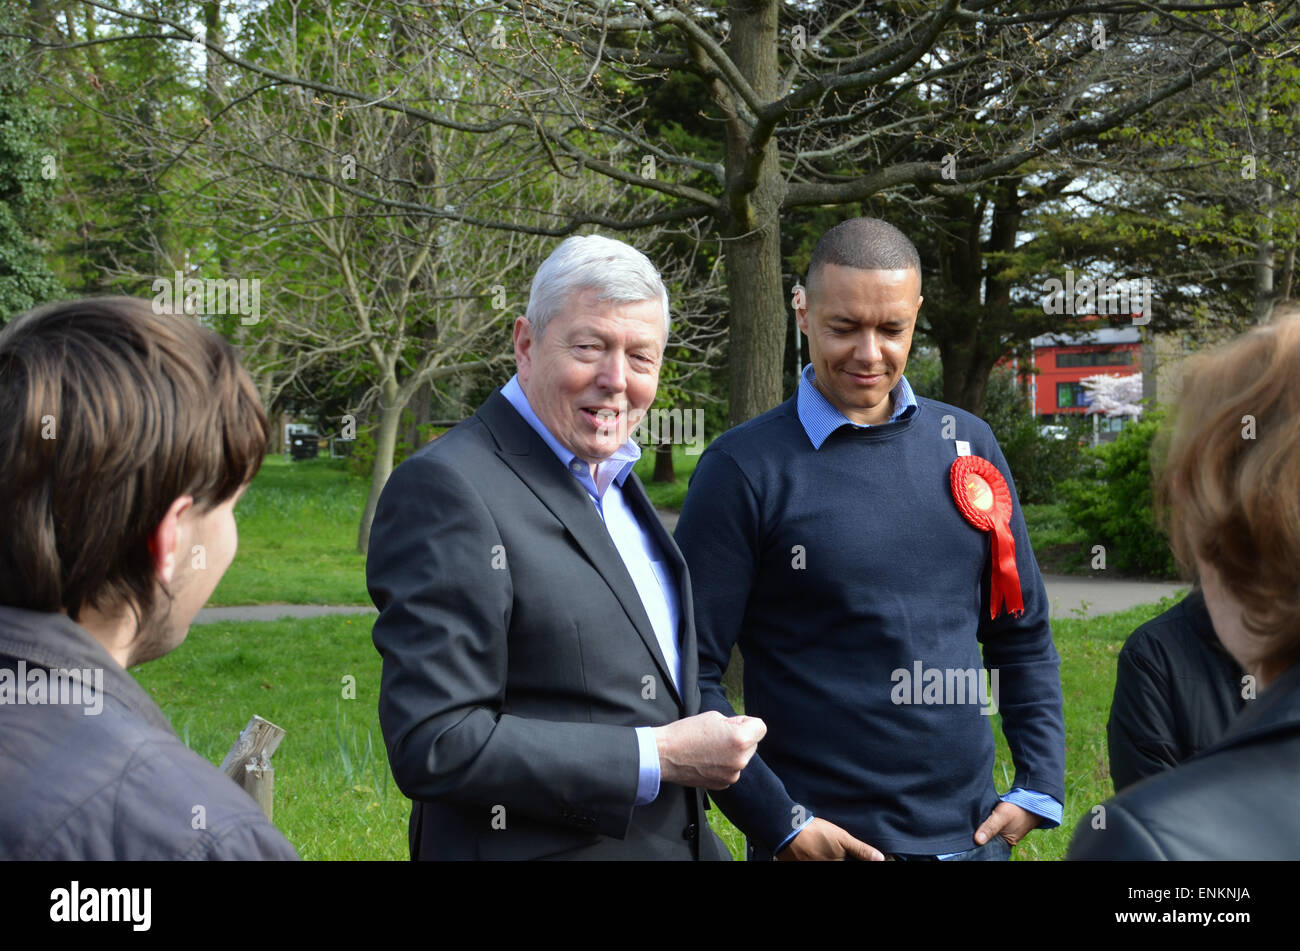 General Election 2015 -Alan Johnson canvassing with South Norwich labour candidate Clive Lewis, April 2015 - Stock Image